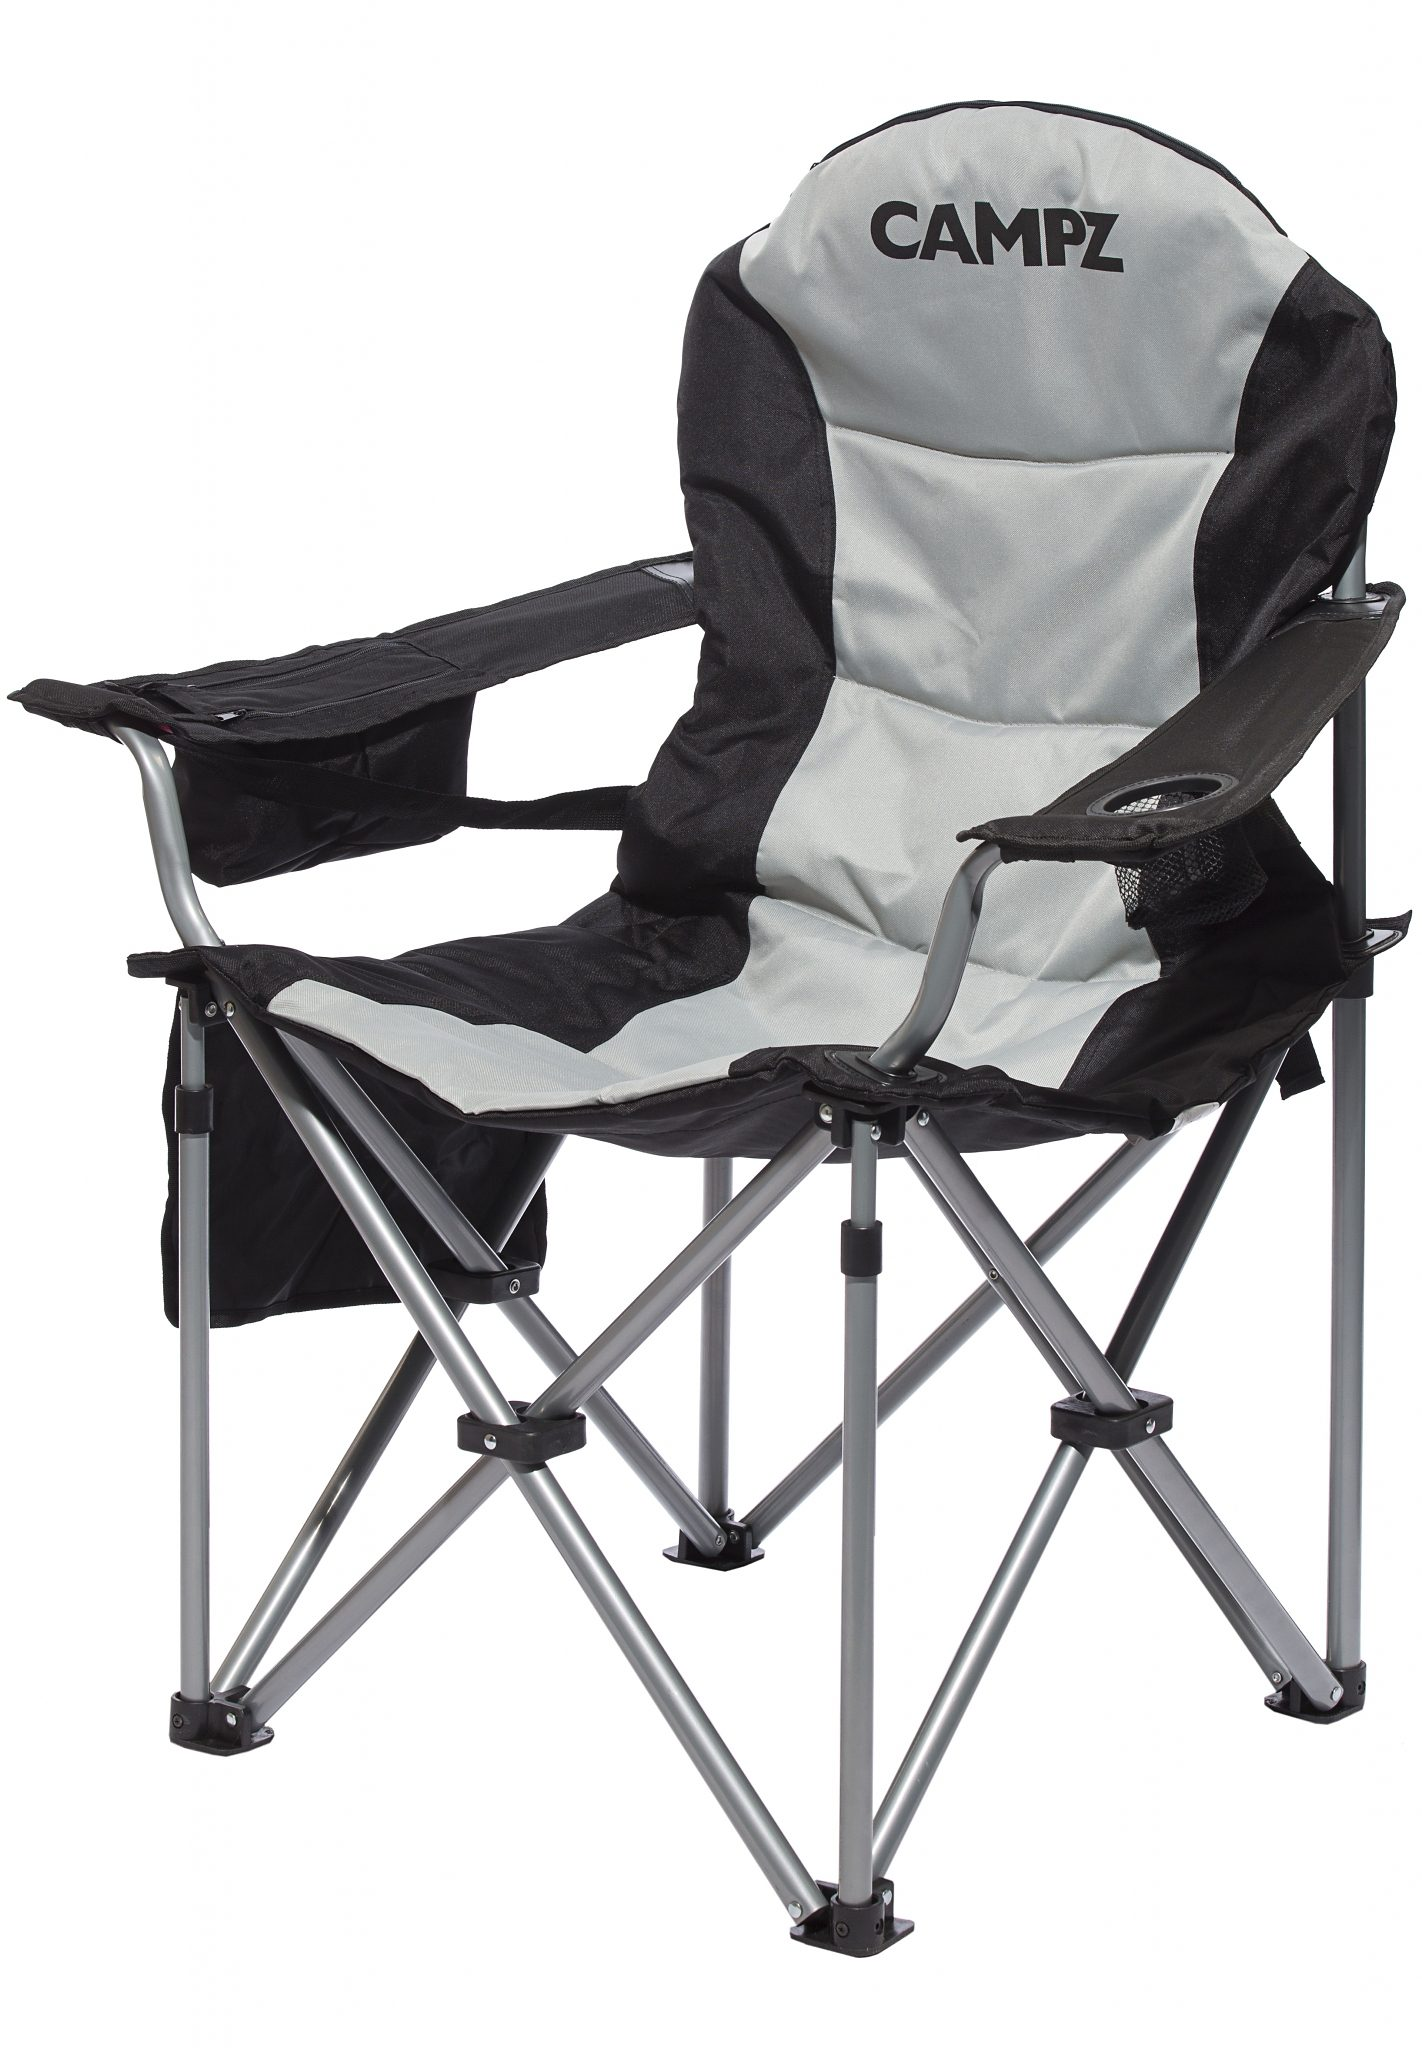 CAMPZ Camping-Stuhl »CAMPZ Deluxe Arm Chair«